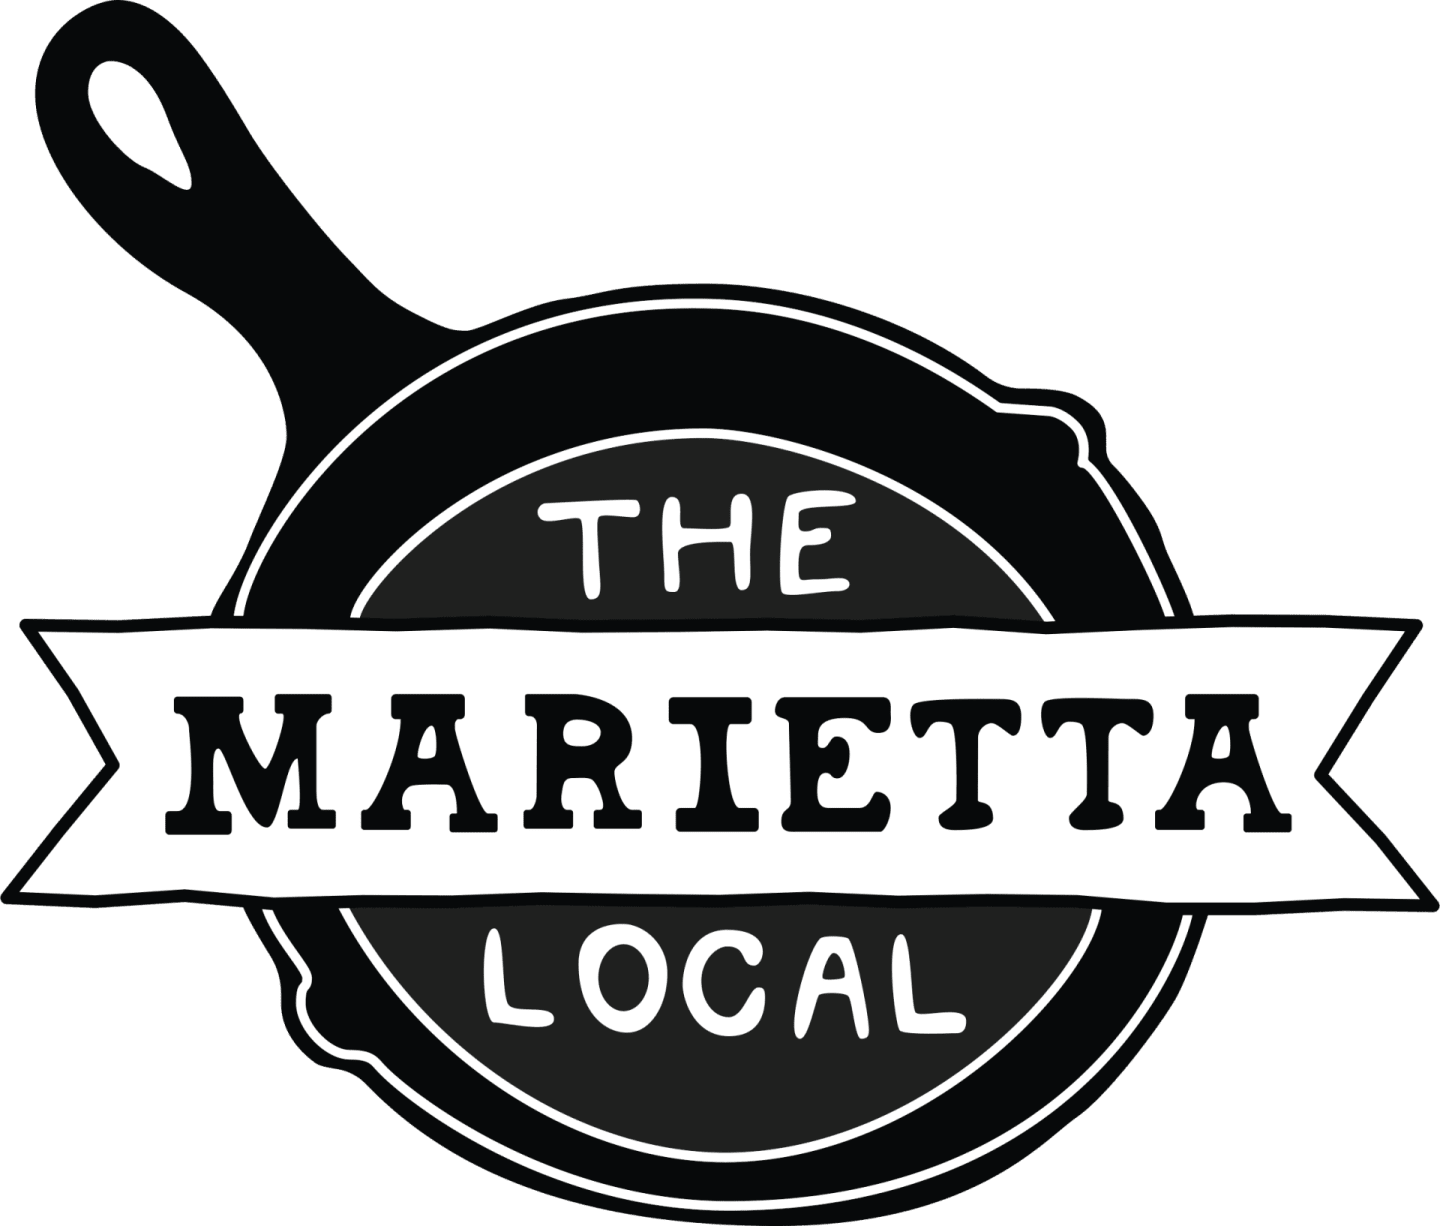 the marietta local logo